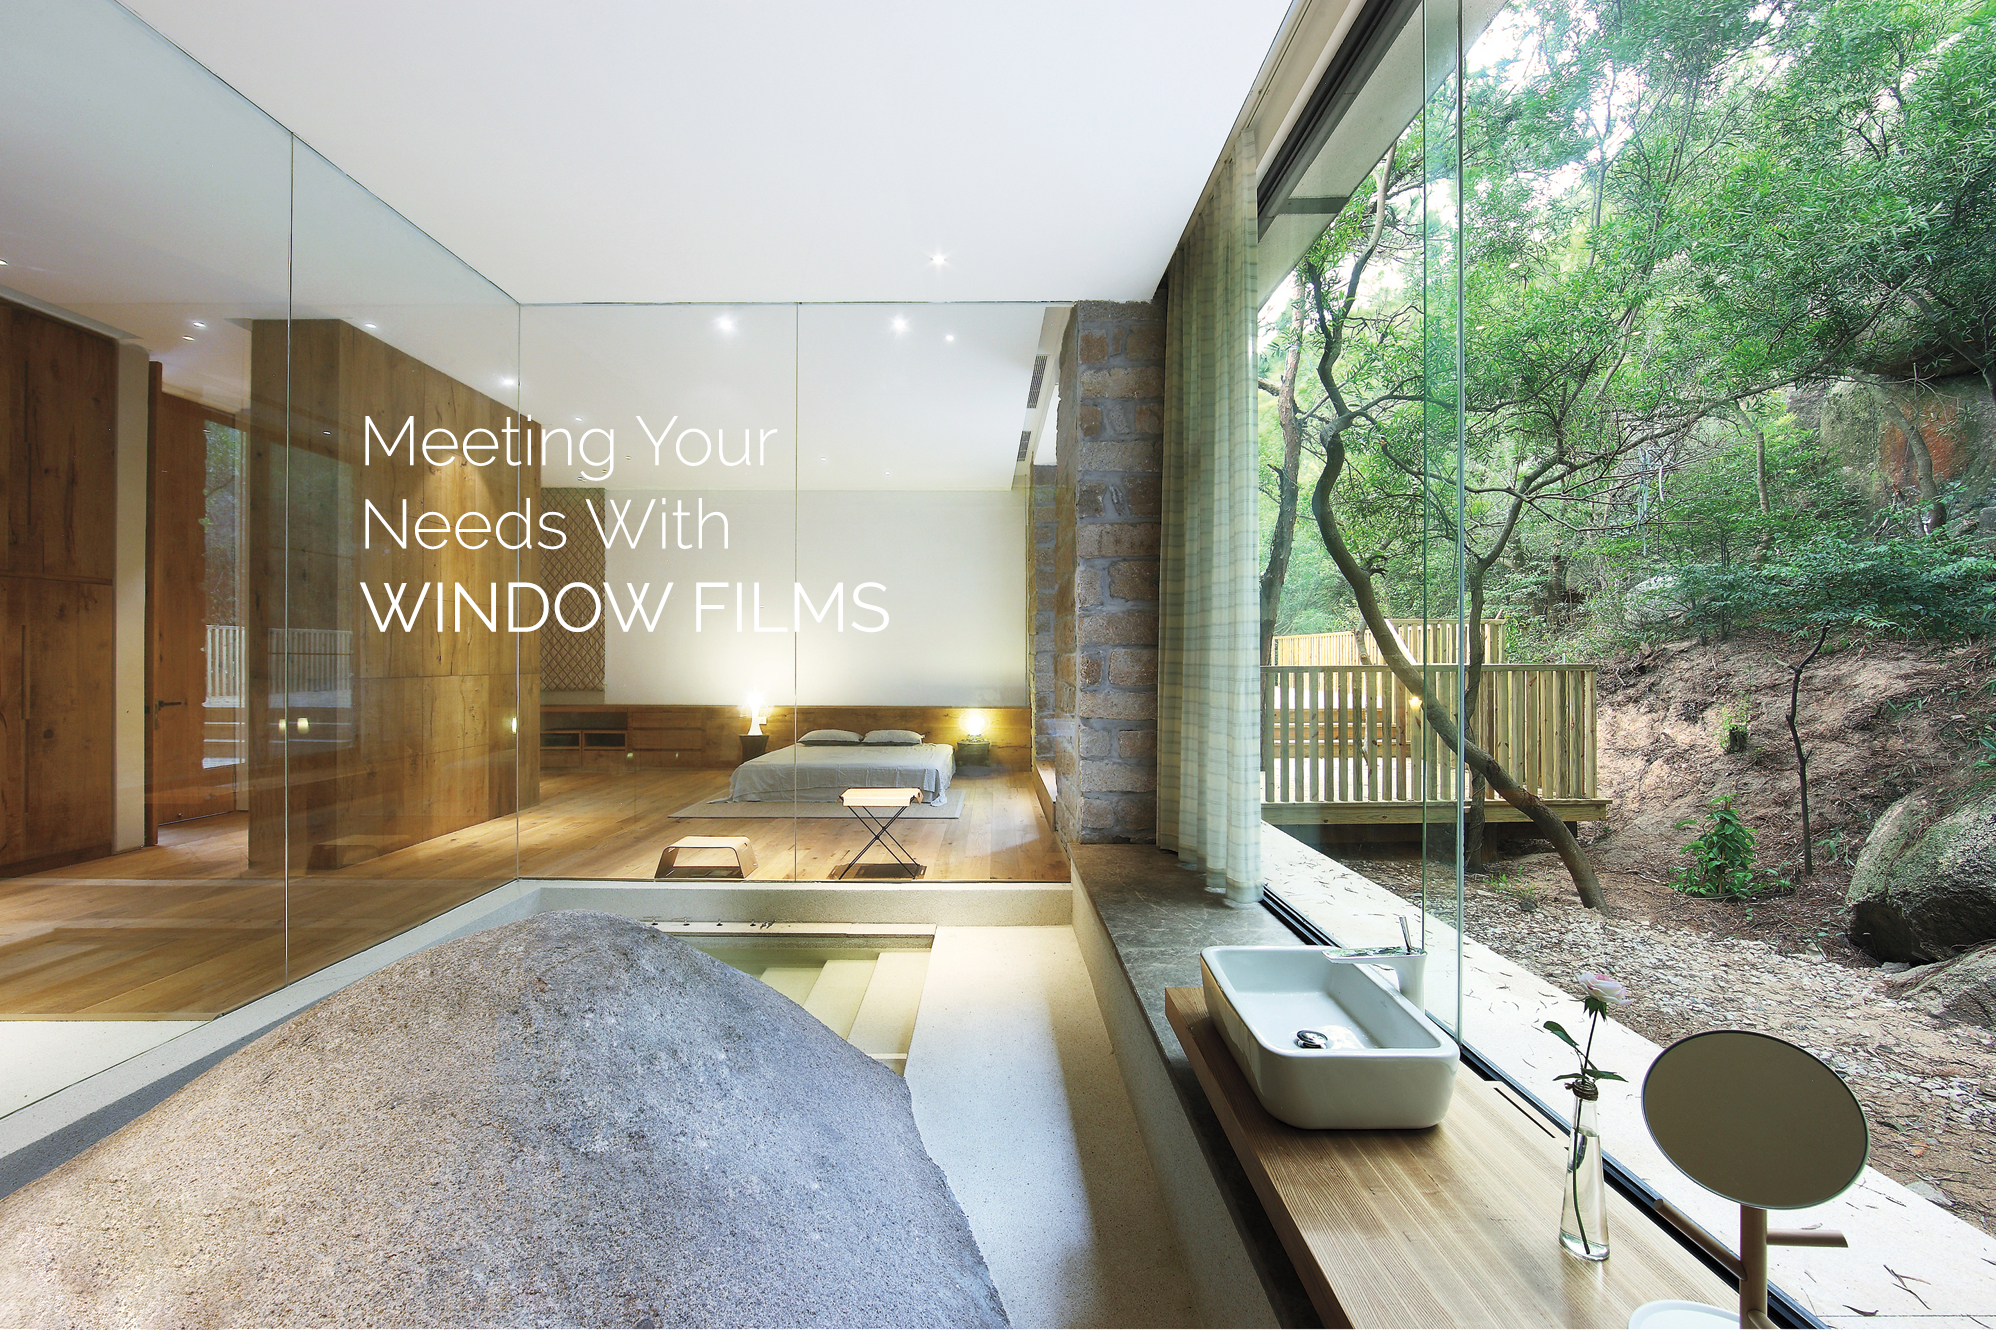 meeting your needs with window films